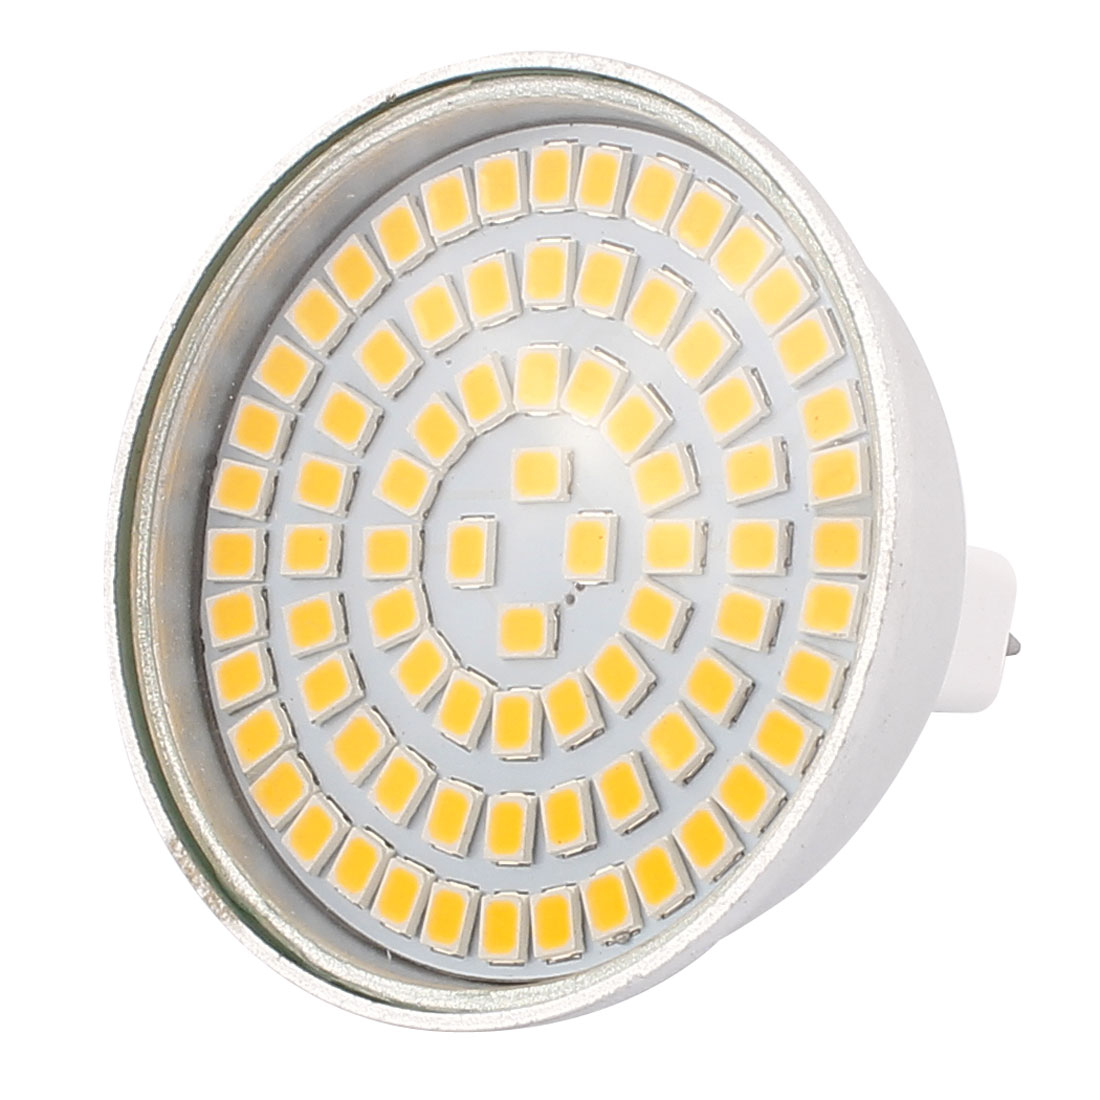 220V 8W MR16 2835 SMD 80 LEDs LED Bulb Light Spotlight Lamp Energy Save Warm White